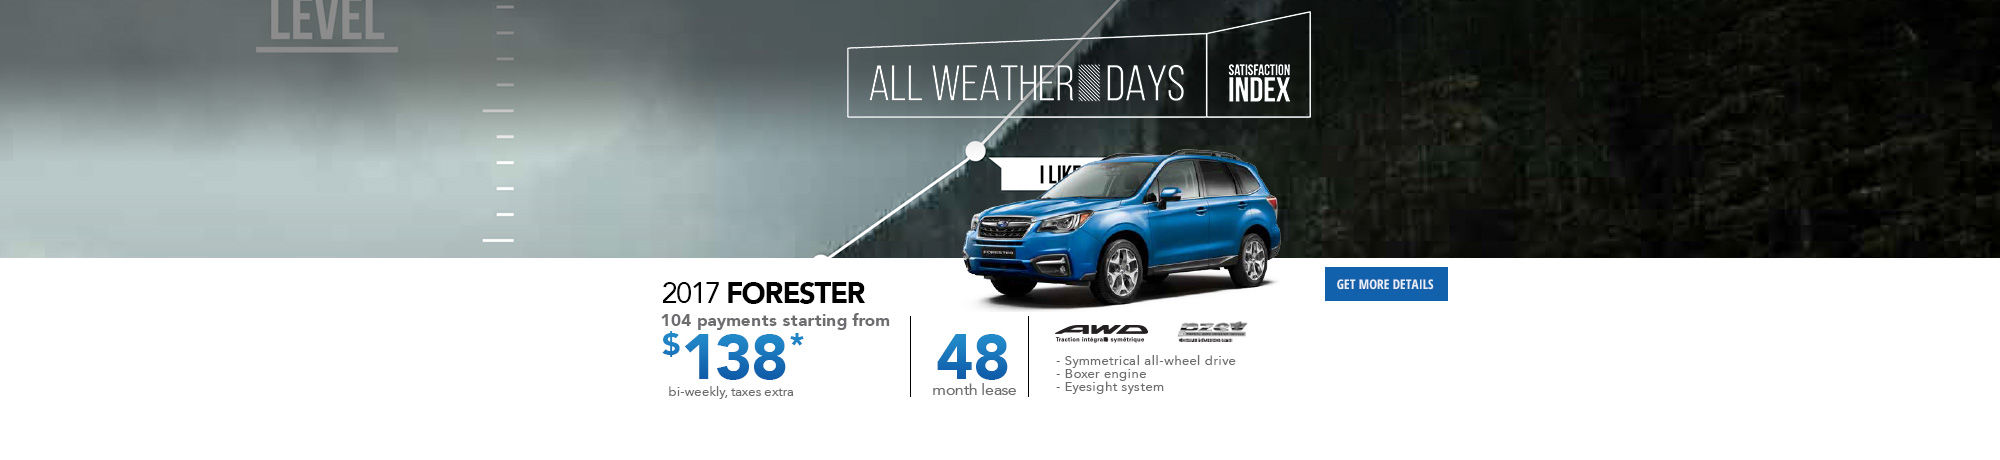 All weather Days-Forester